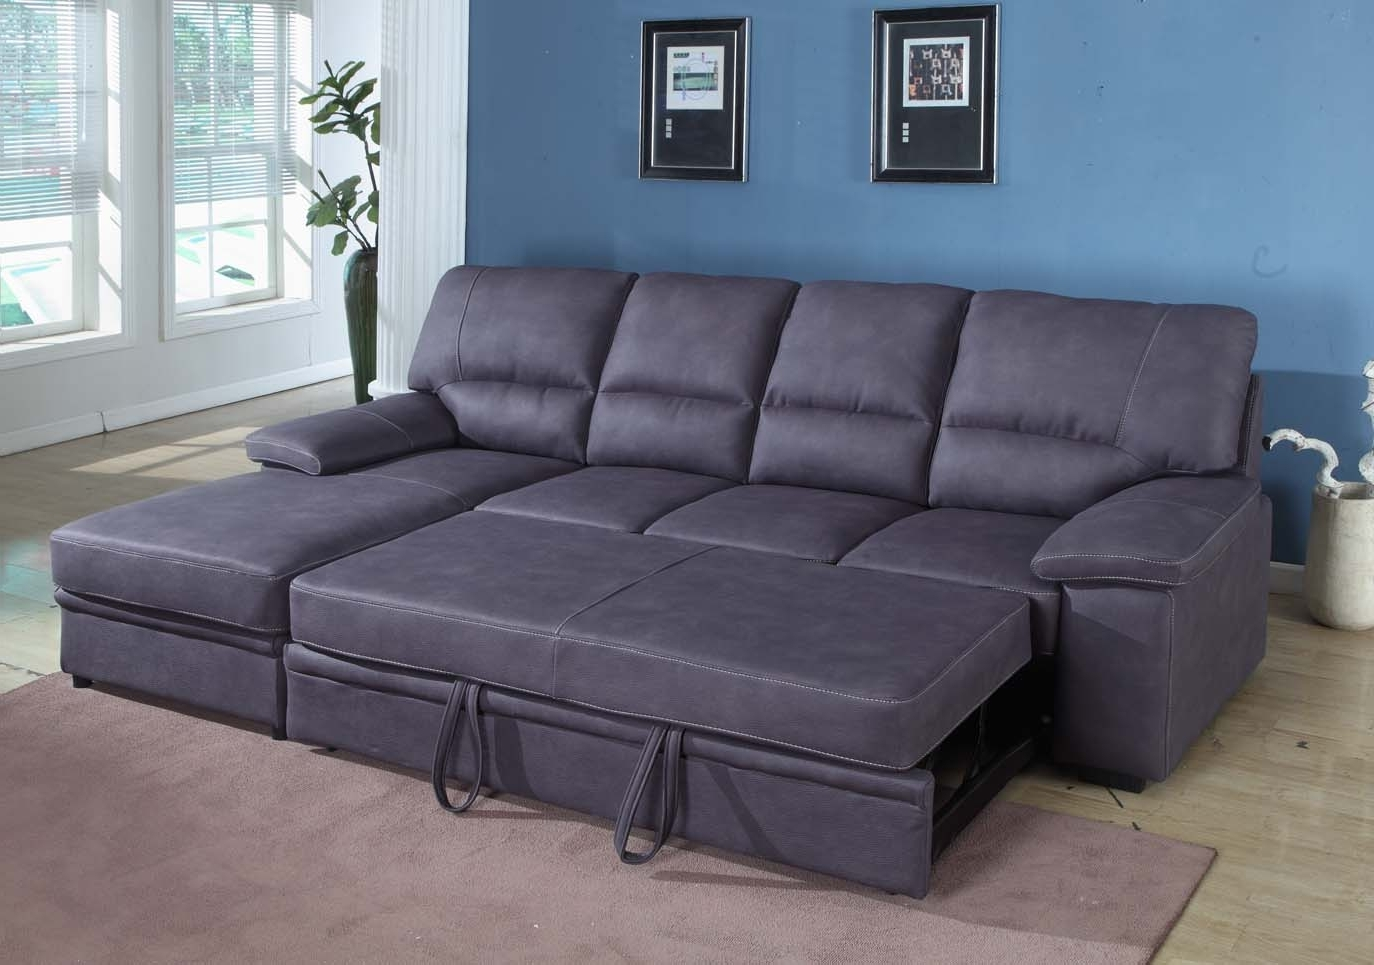 Sleeper Sectional Sofas In Well Liked Grey Sleeper Sectional Sofa (View 3 of 15)